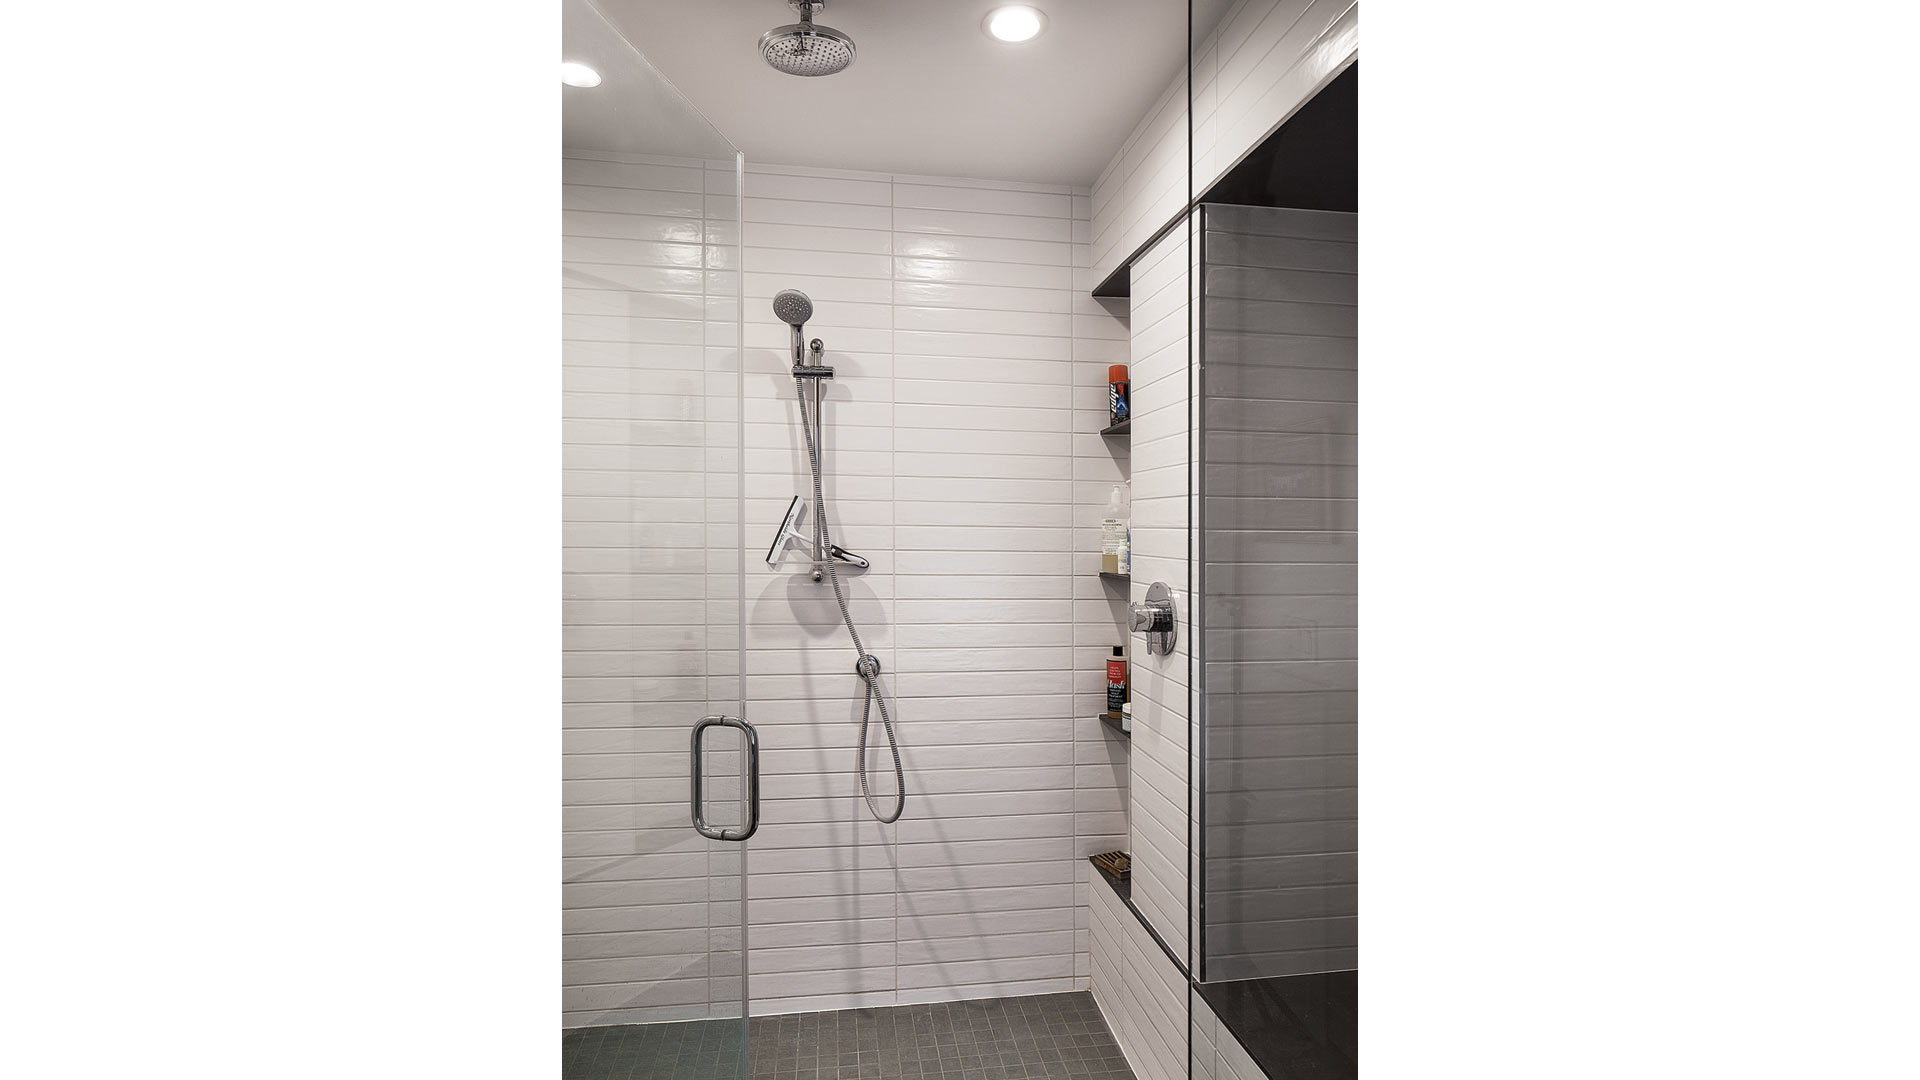 New Master Shower incorporates precise tile alignments and spacings - Broad Ripple Modern Craftsman Dwelling on Carrollton Avenue - Indianapolis, Indiana